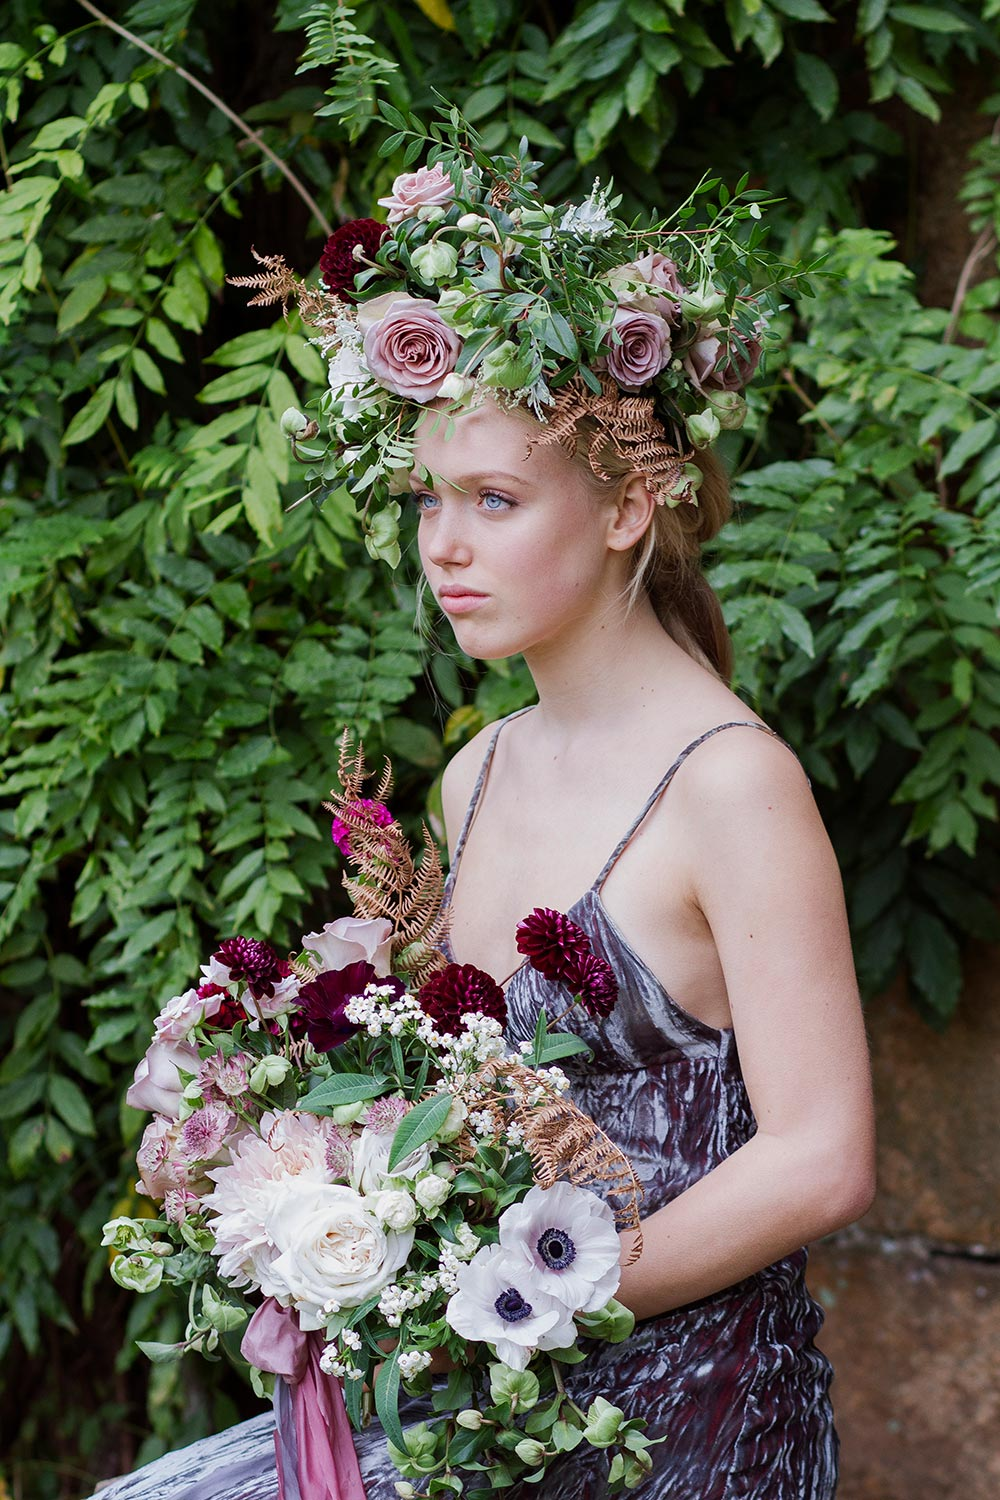 12-wilde-thyme-photoshoot-styling-flower-crown.jpg